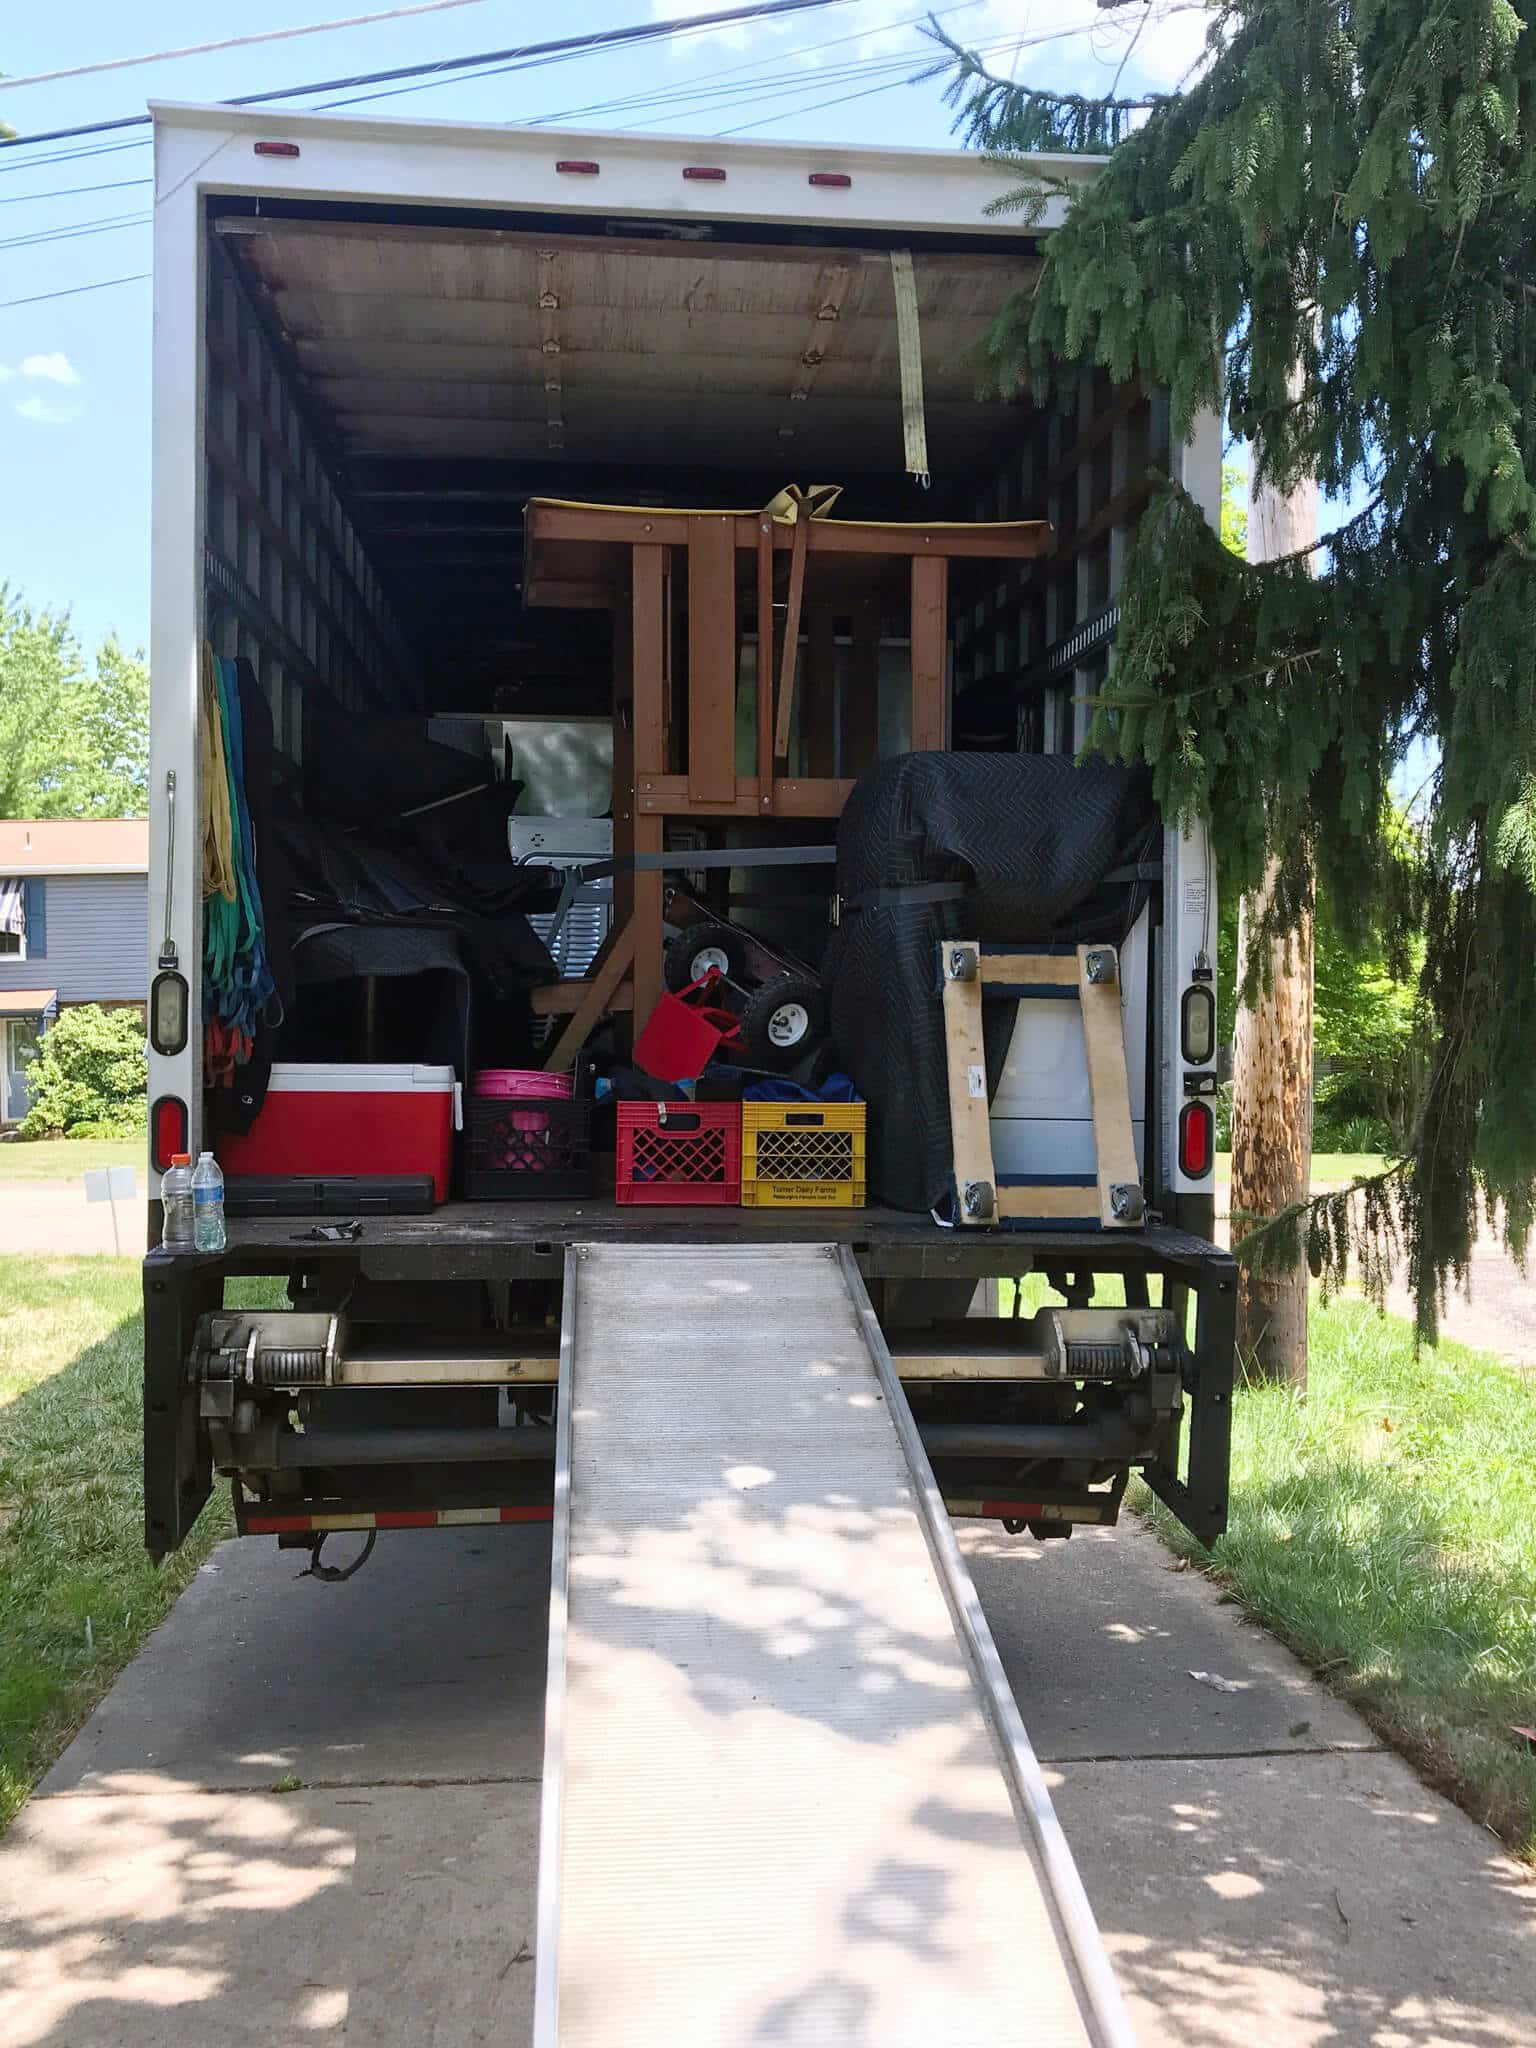 Loaded Truck in Great weather for a move